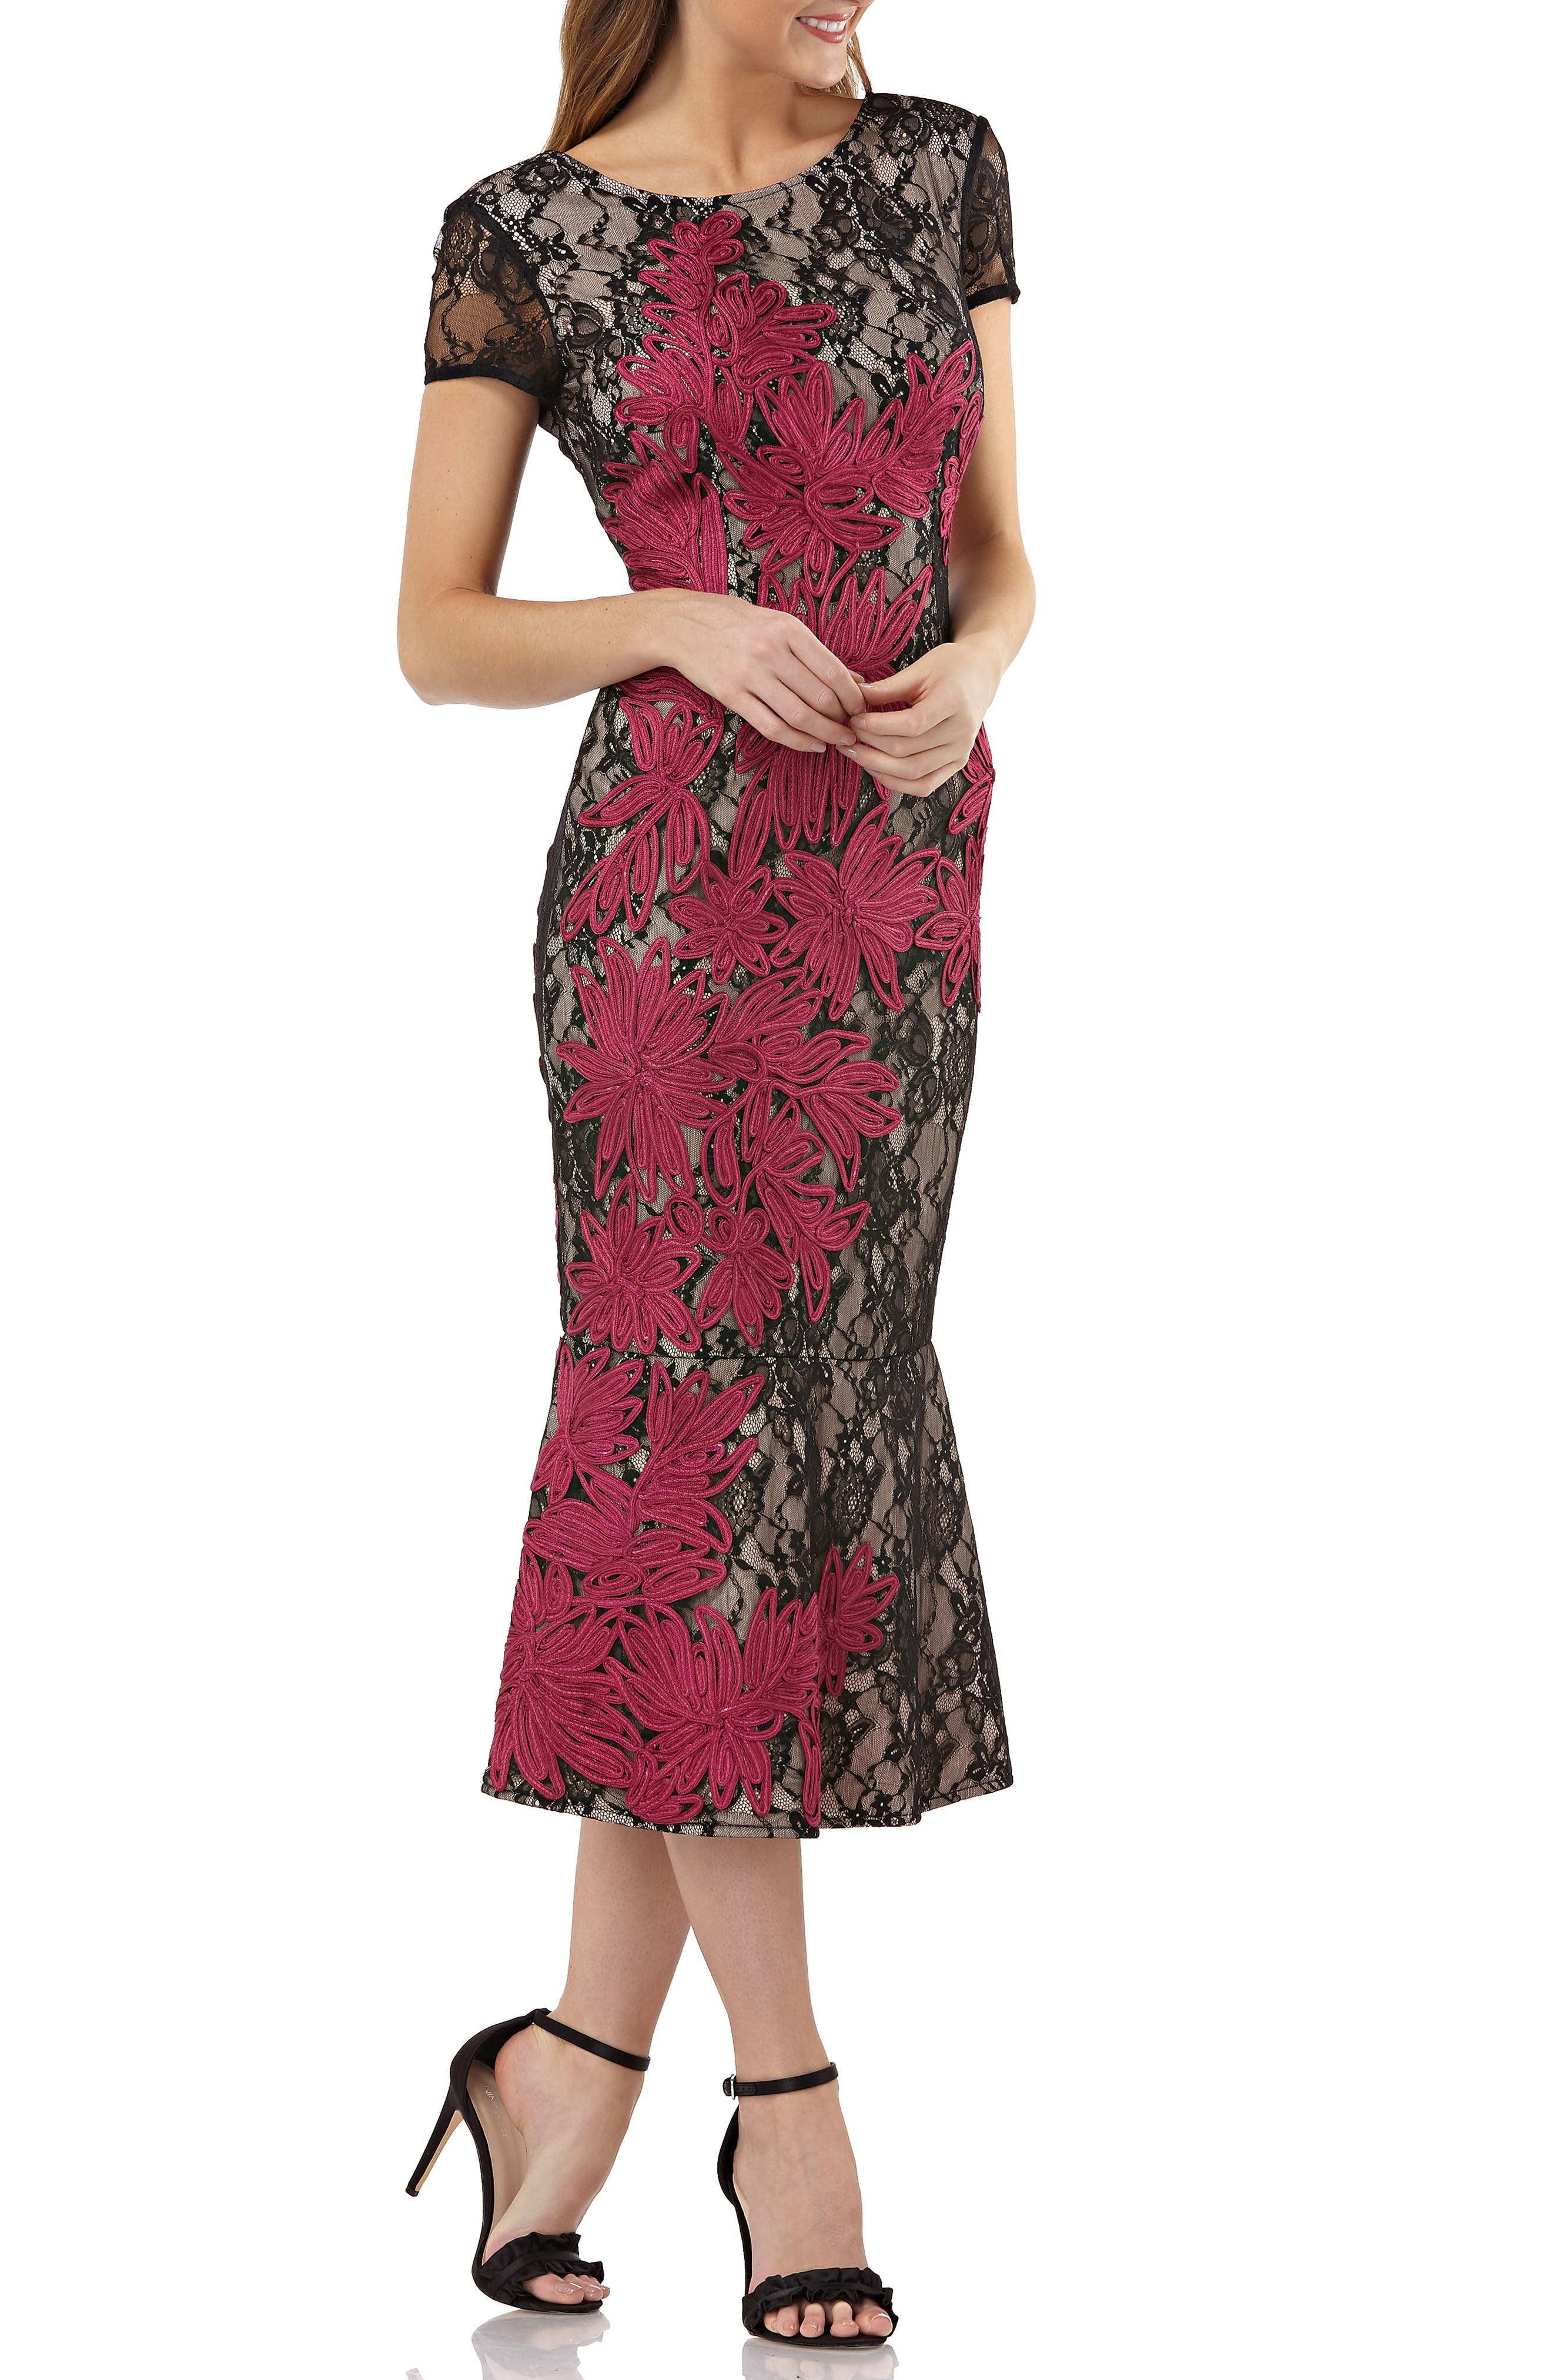 JS COLLECTIONS SOUTACHE EMBROIDERED LACE DRESS